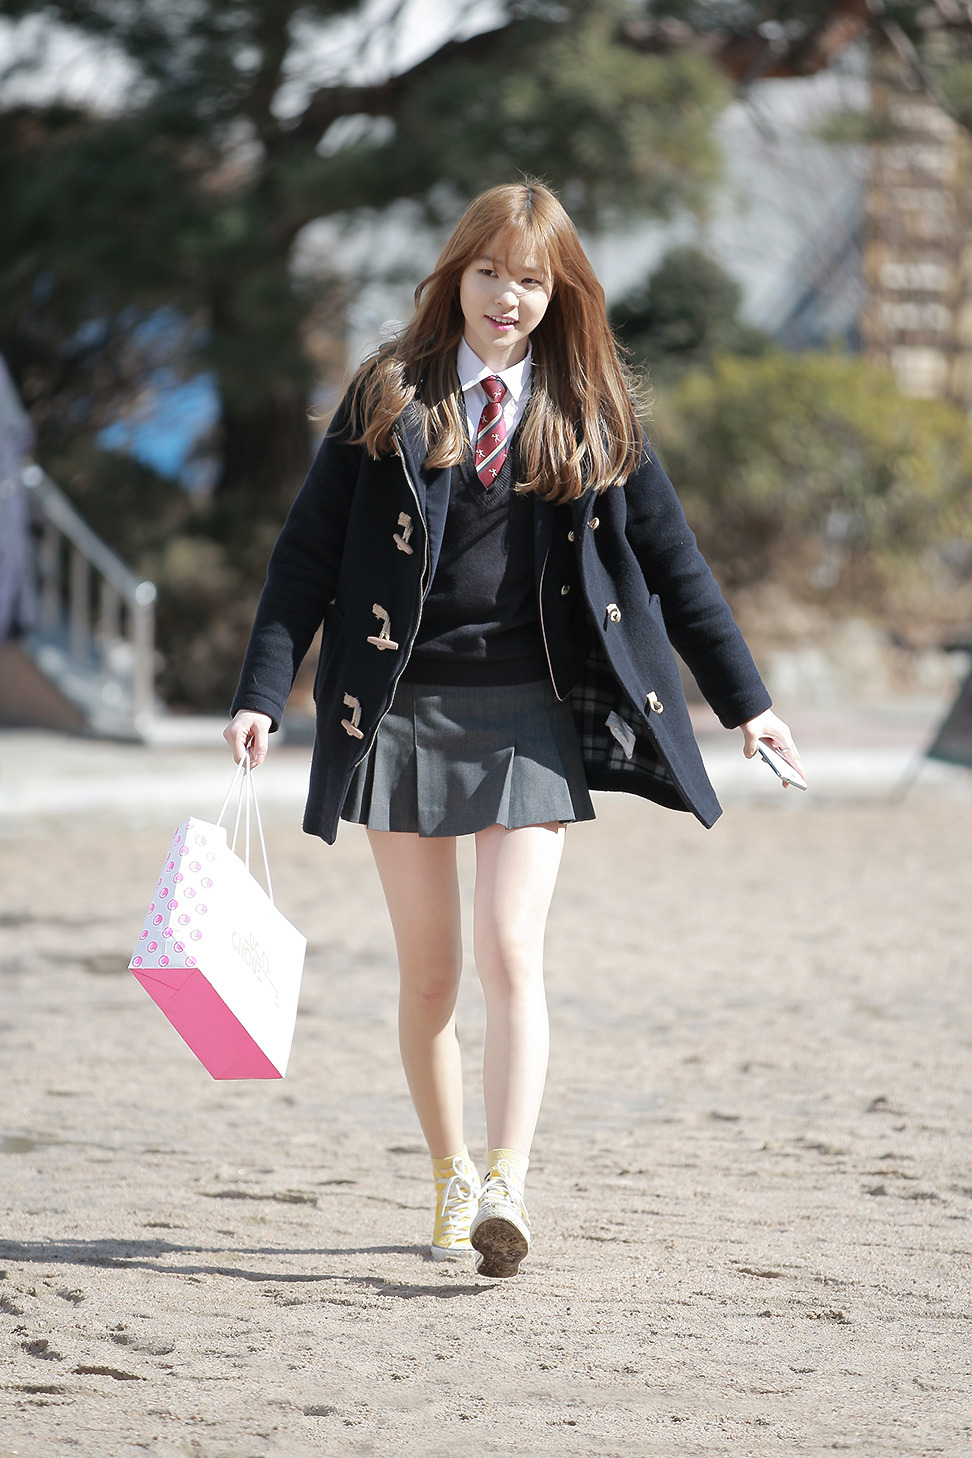 School uniforms in South Korea - Wikipedia